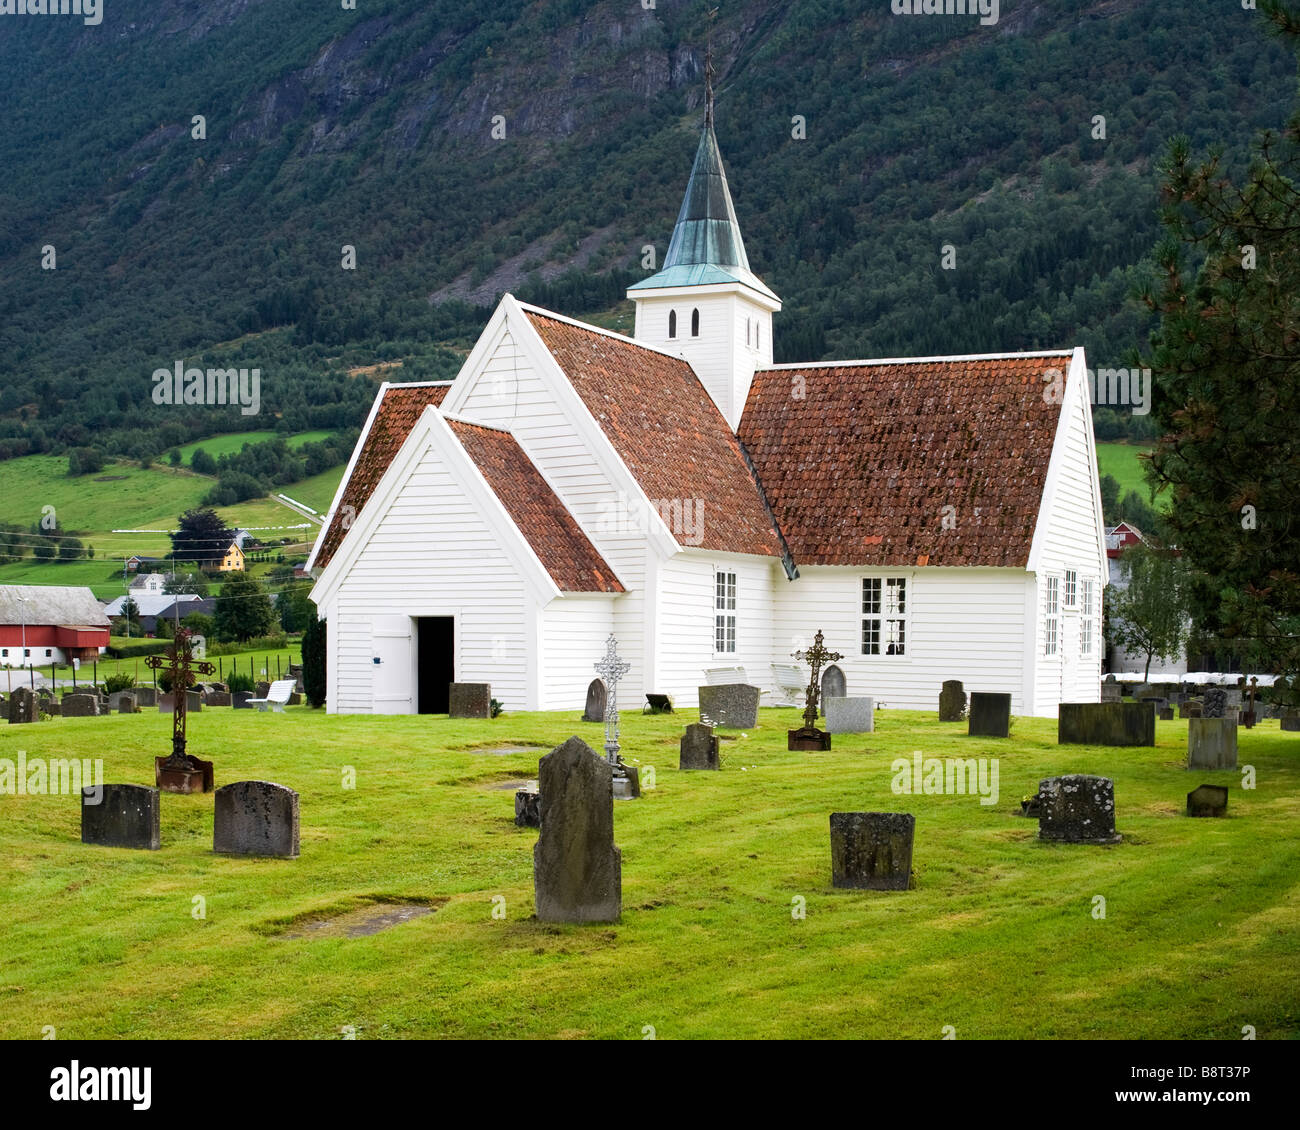 Olden old church (1759), in Olden, Norway - Stock Image